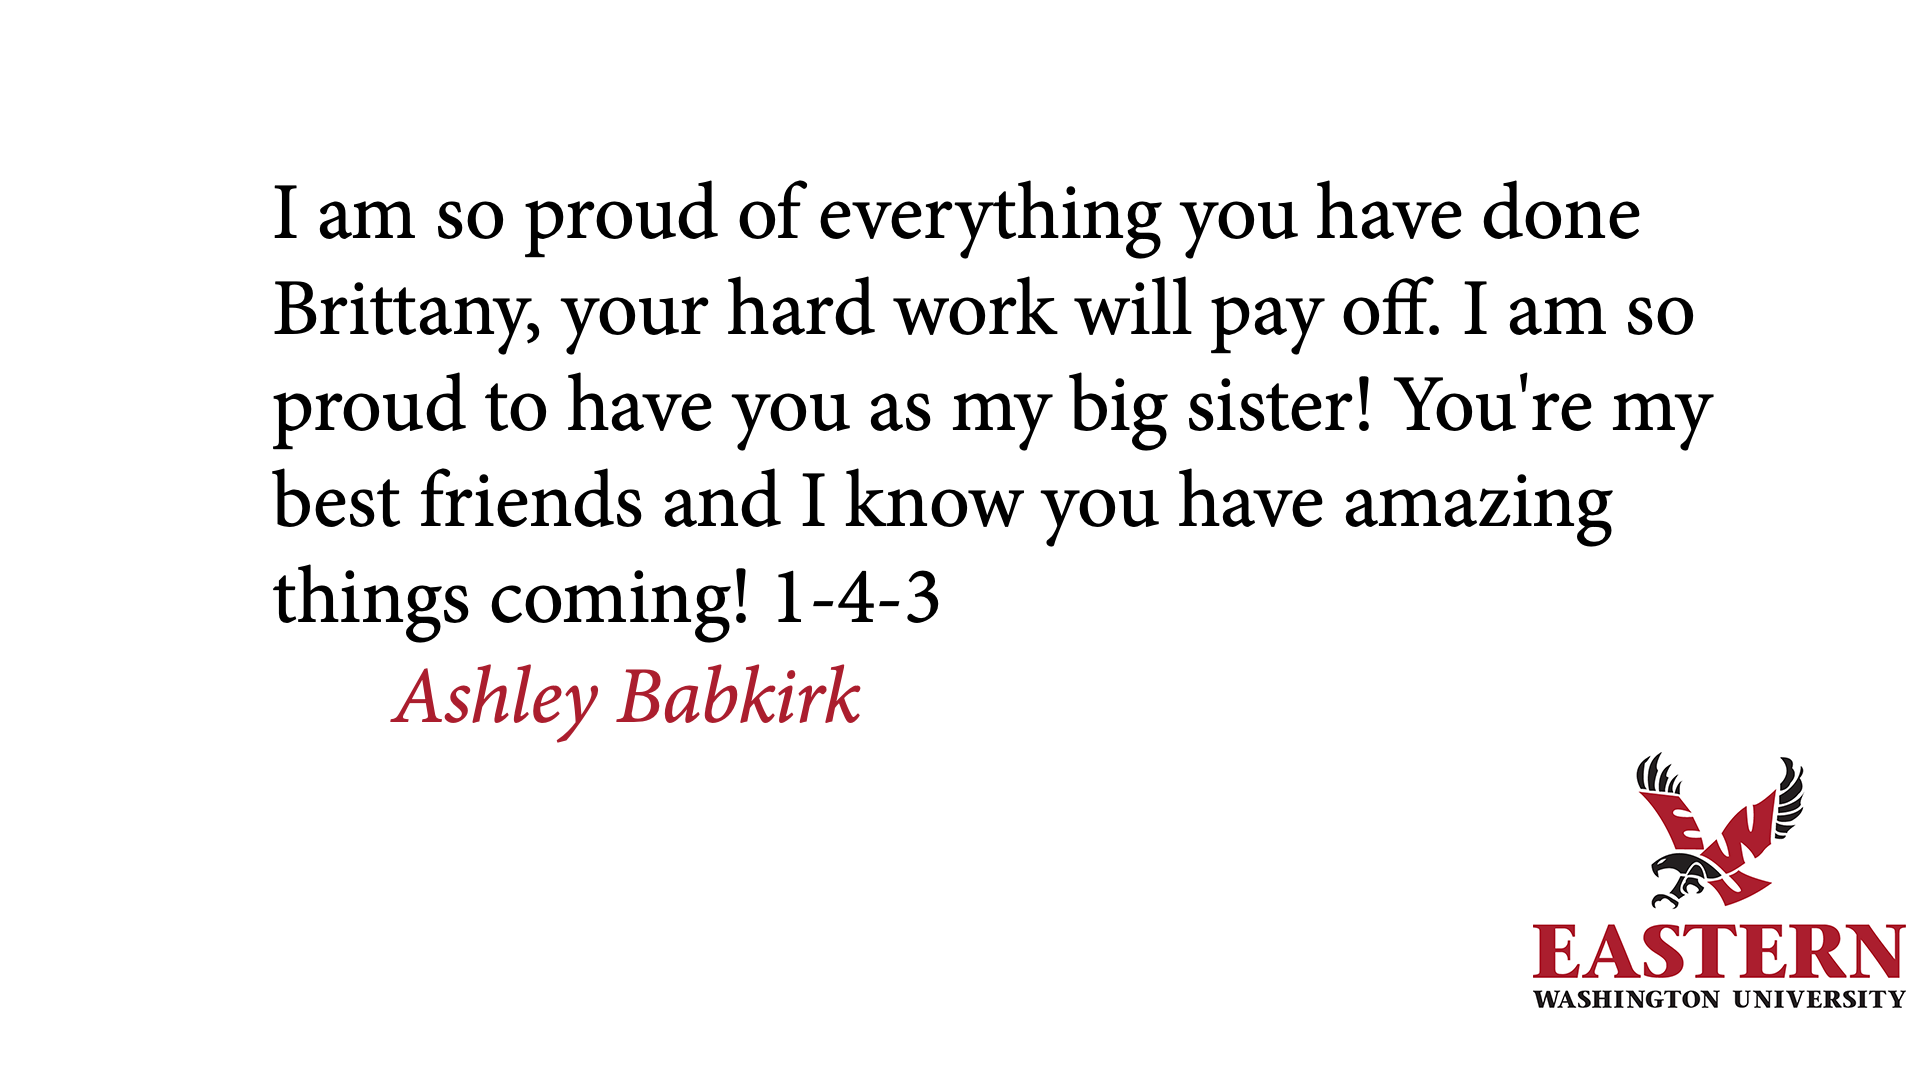 tbi_brittany-marie-babkirk_5125.png